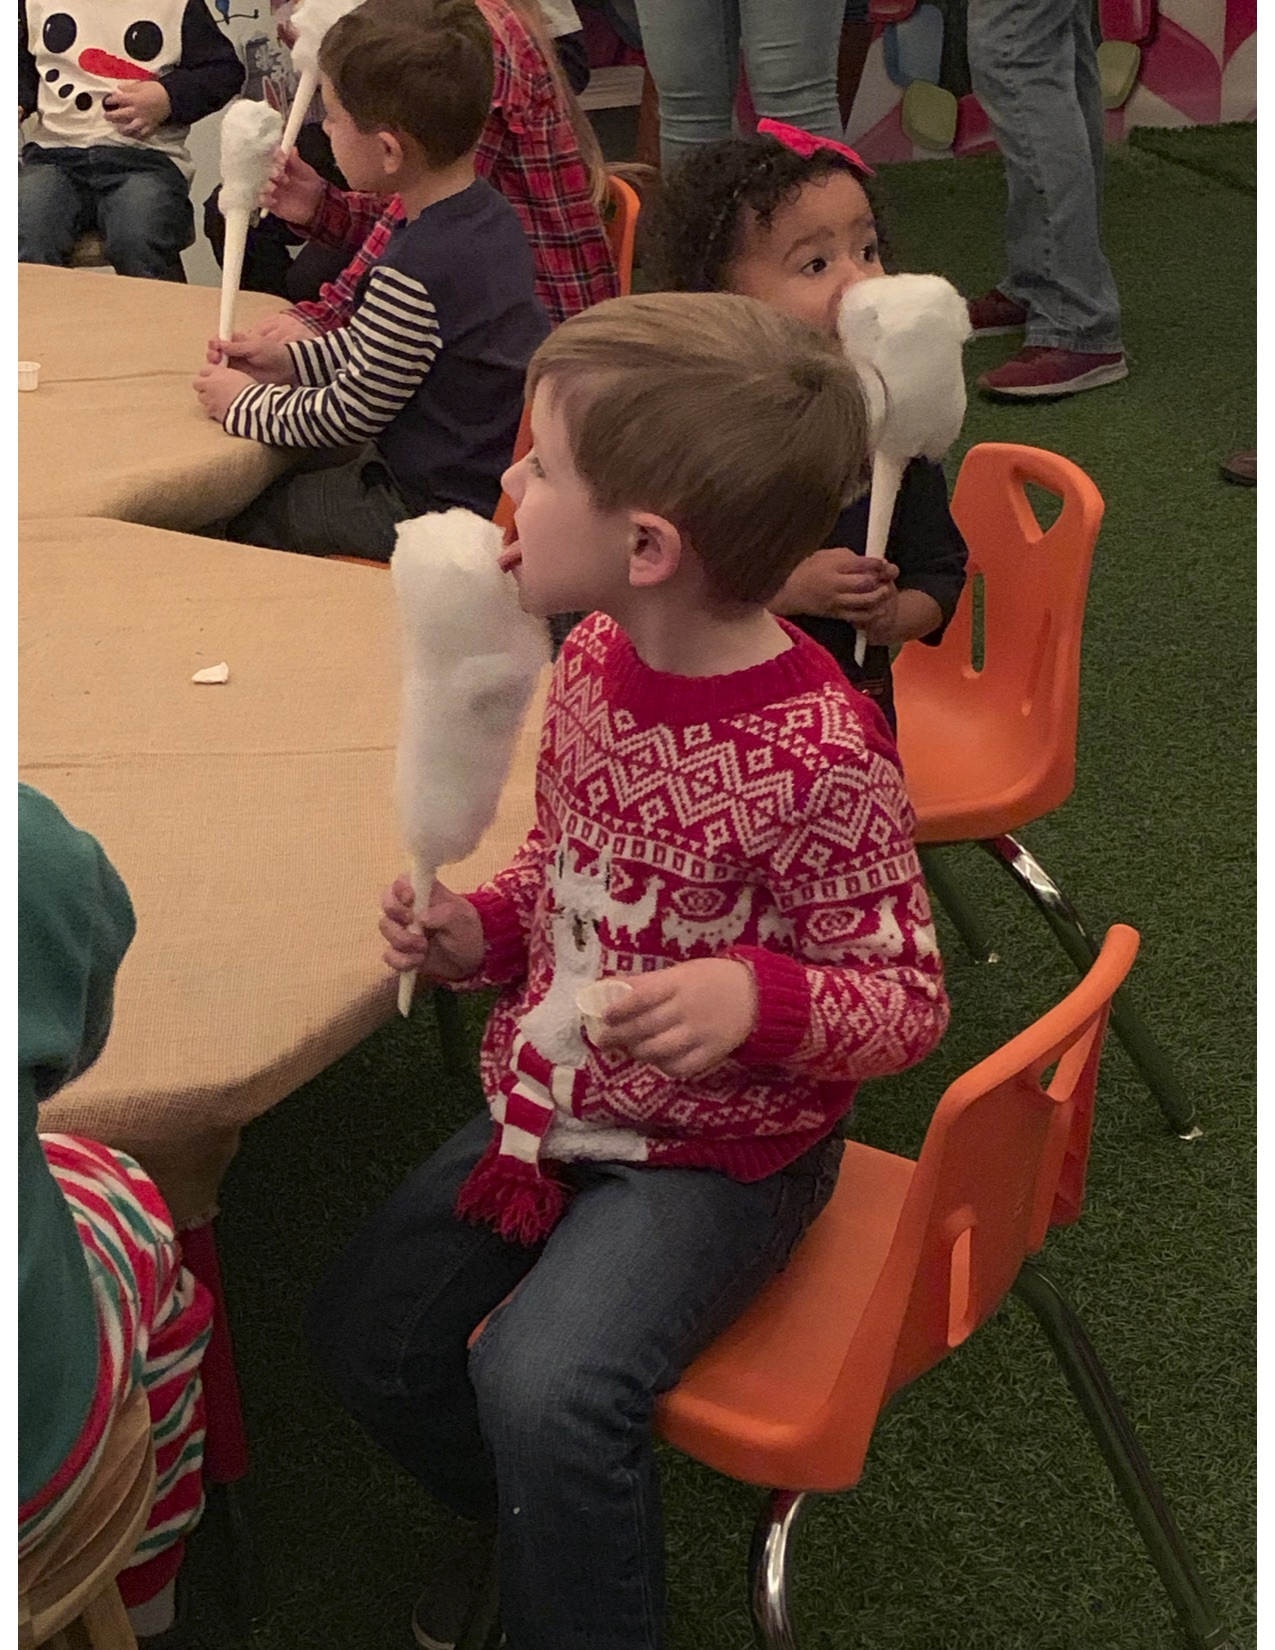 boy eating cotton candy at Holiday event